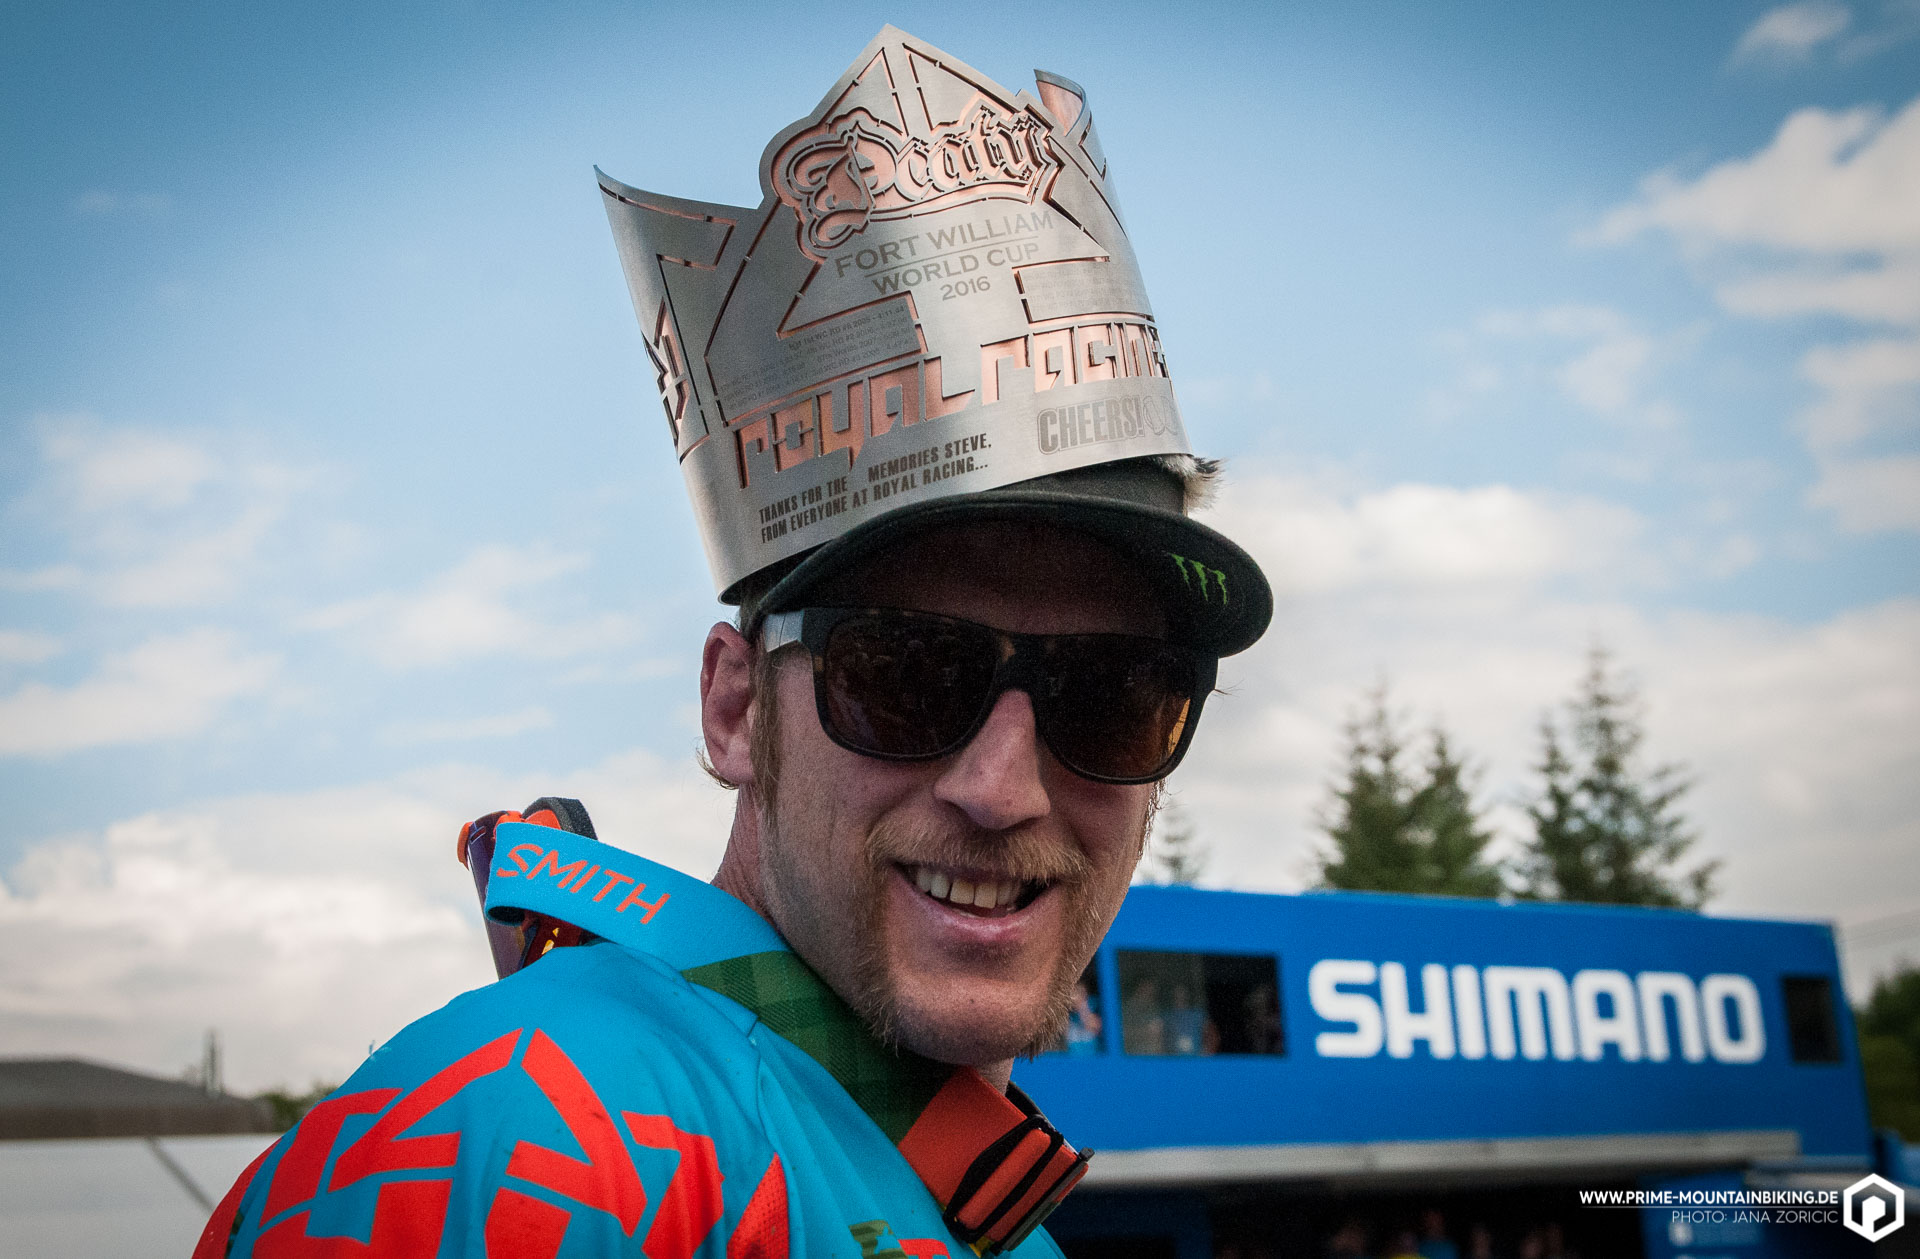 Fort William Finals Steve Peat (10 von 14)